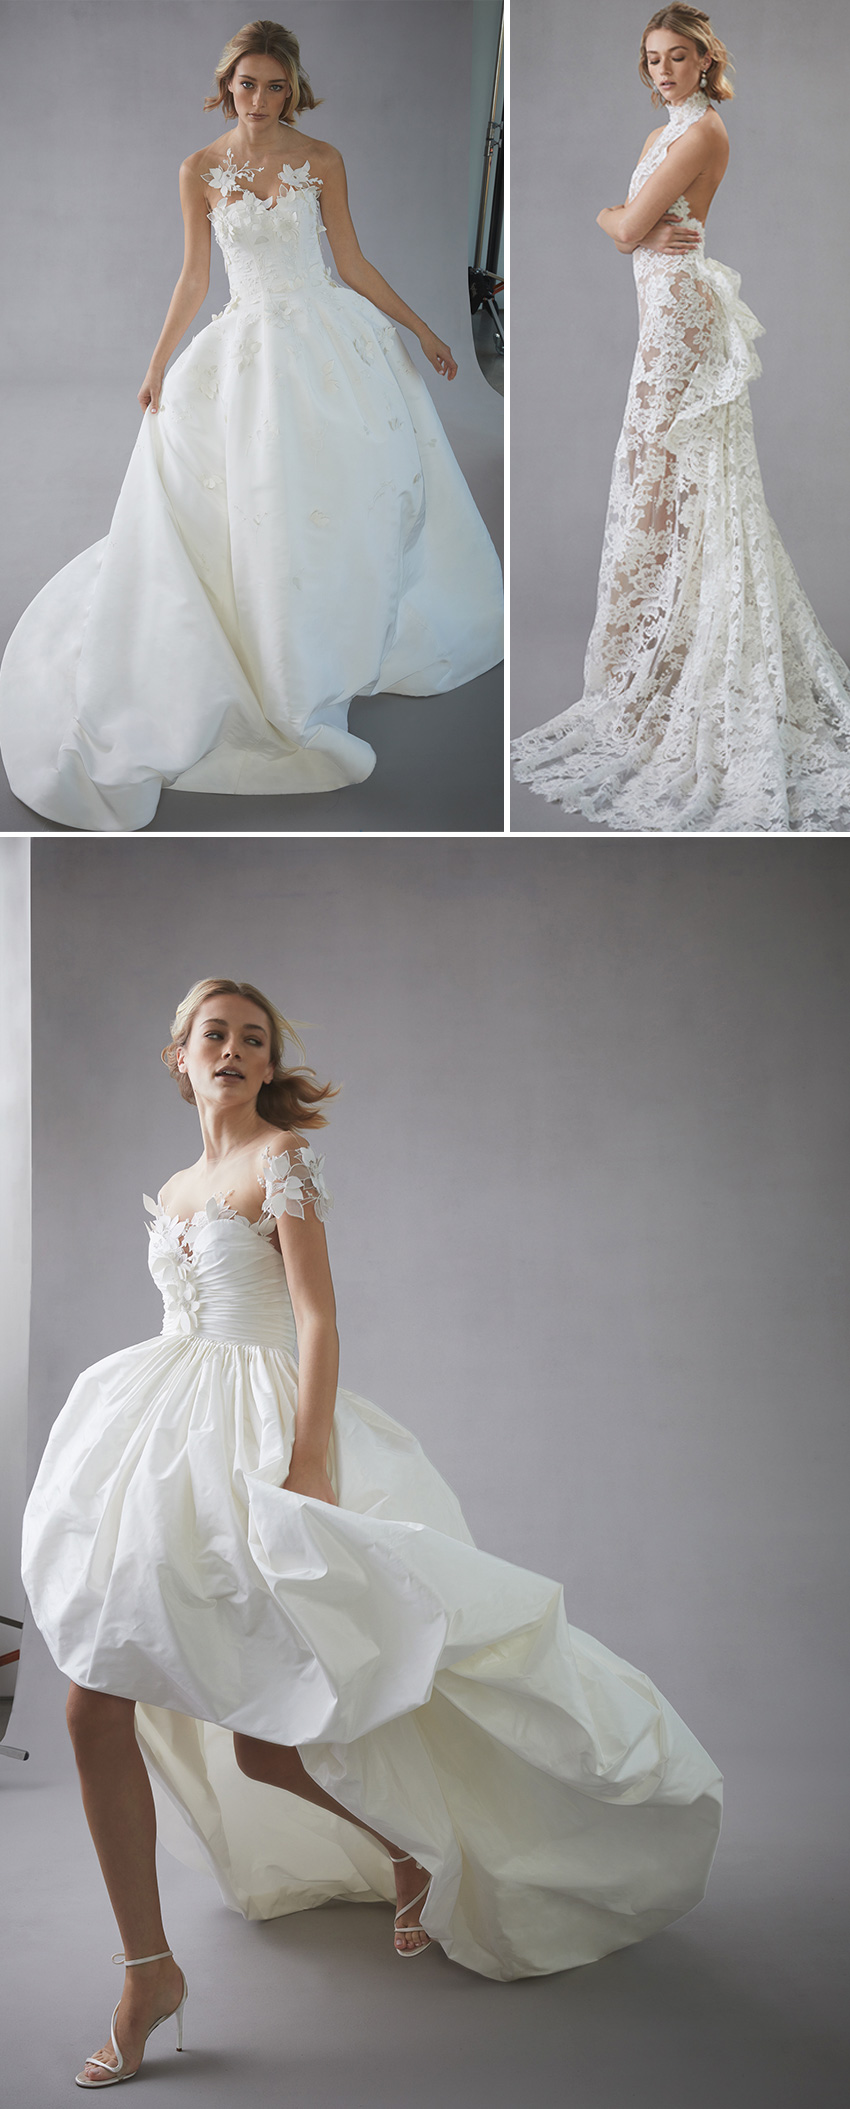 Oscar de la Renta Spring 2022 bridal collection in Perfect Wedding Blog